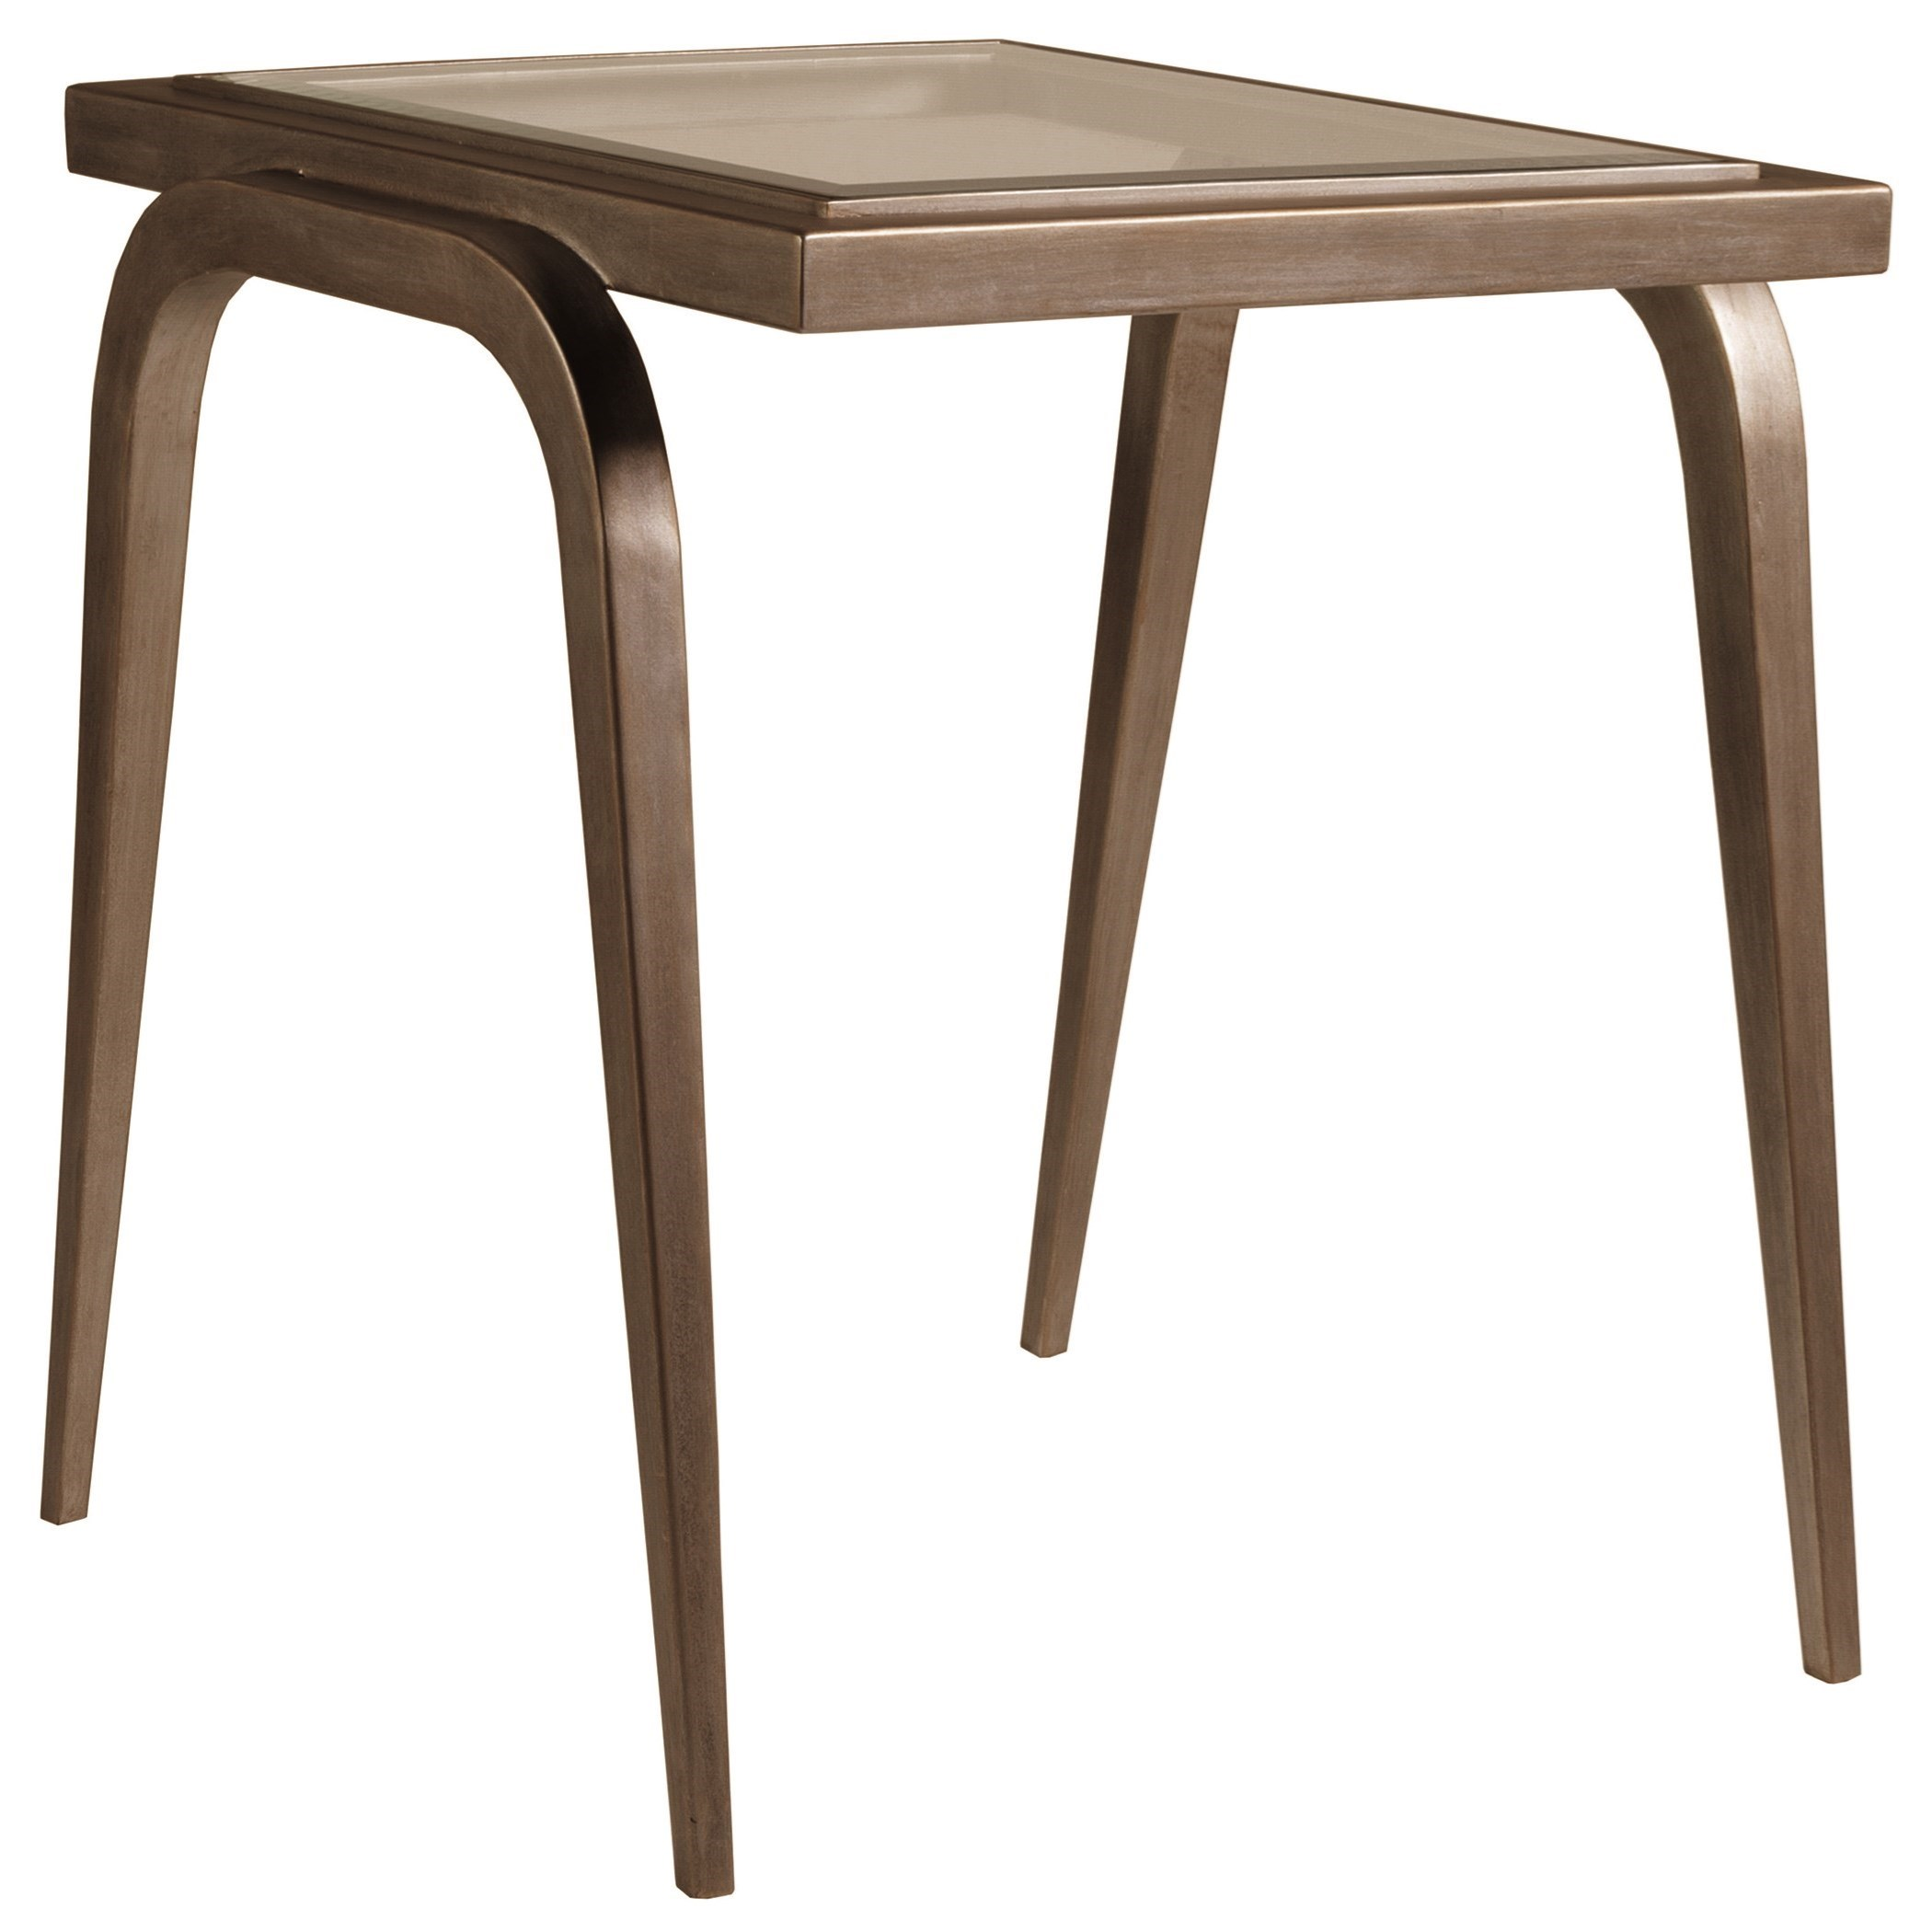 Metal Designs Mitchum Rectangular End Table by Artistica at Baer's Furniture